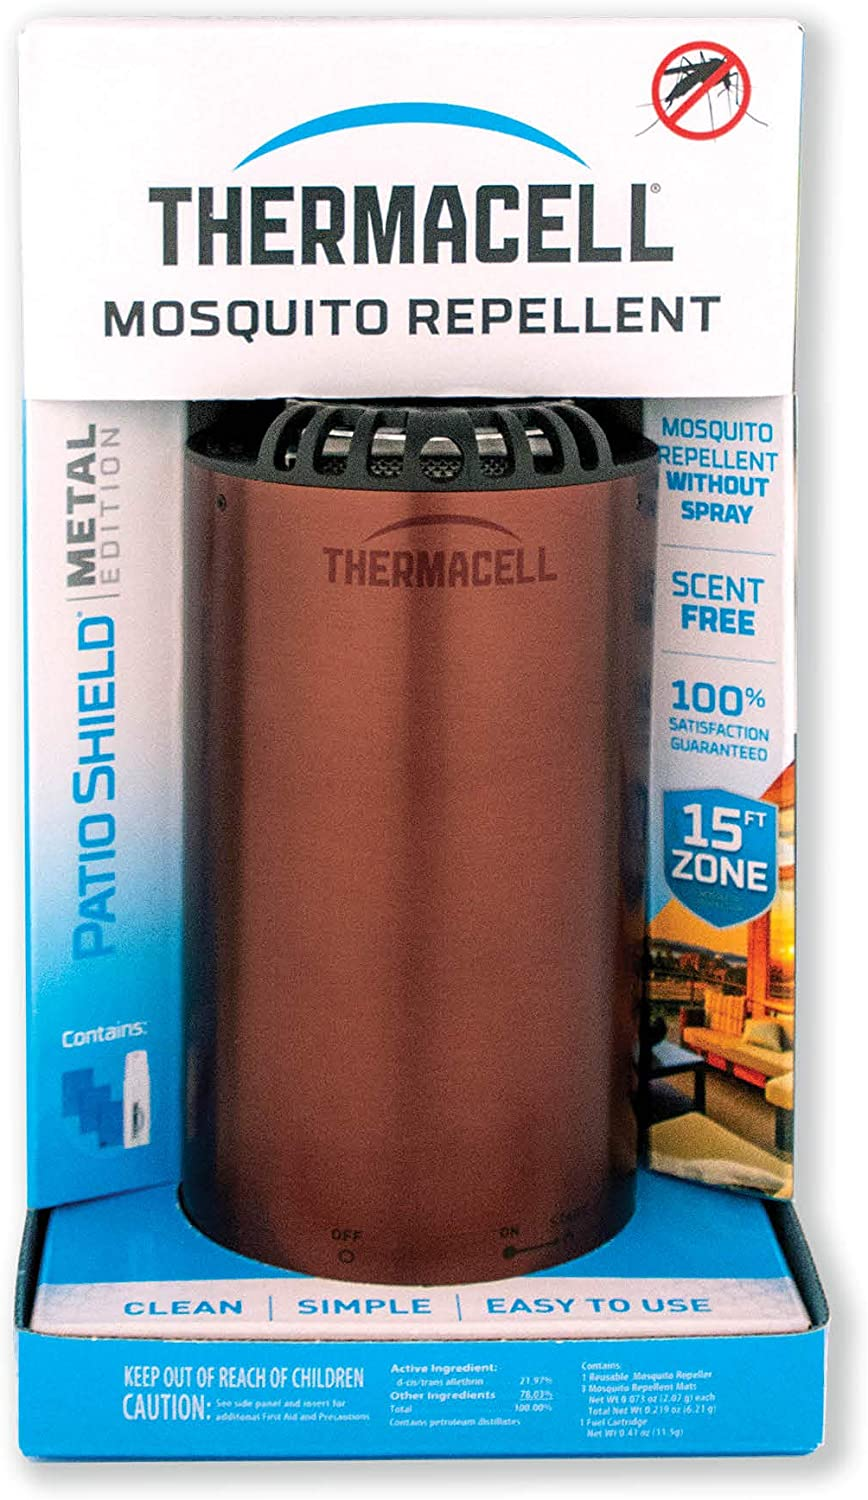 Thermacell Patio Shield Mosquito Repellent Metal Edition, Bronze; Easy to Use, Highly Effective; Provides 12 Hours of DEET-Free Backyard Mosquito Repellent; Scent-Free, No Spray, No Smoke and Cordless